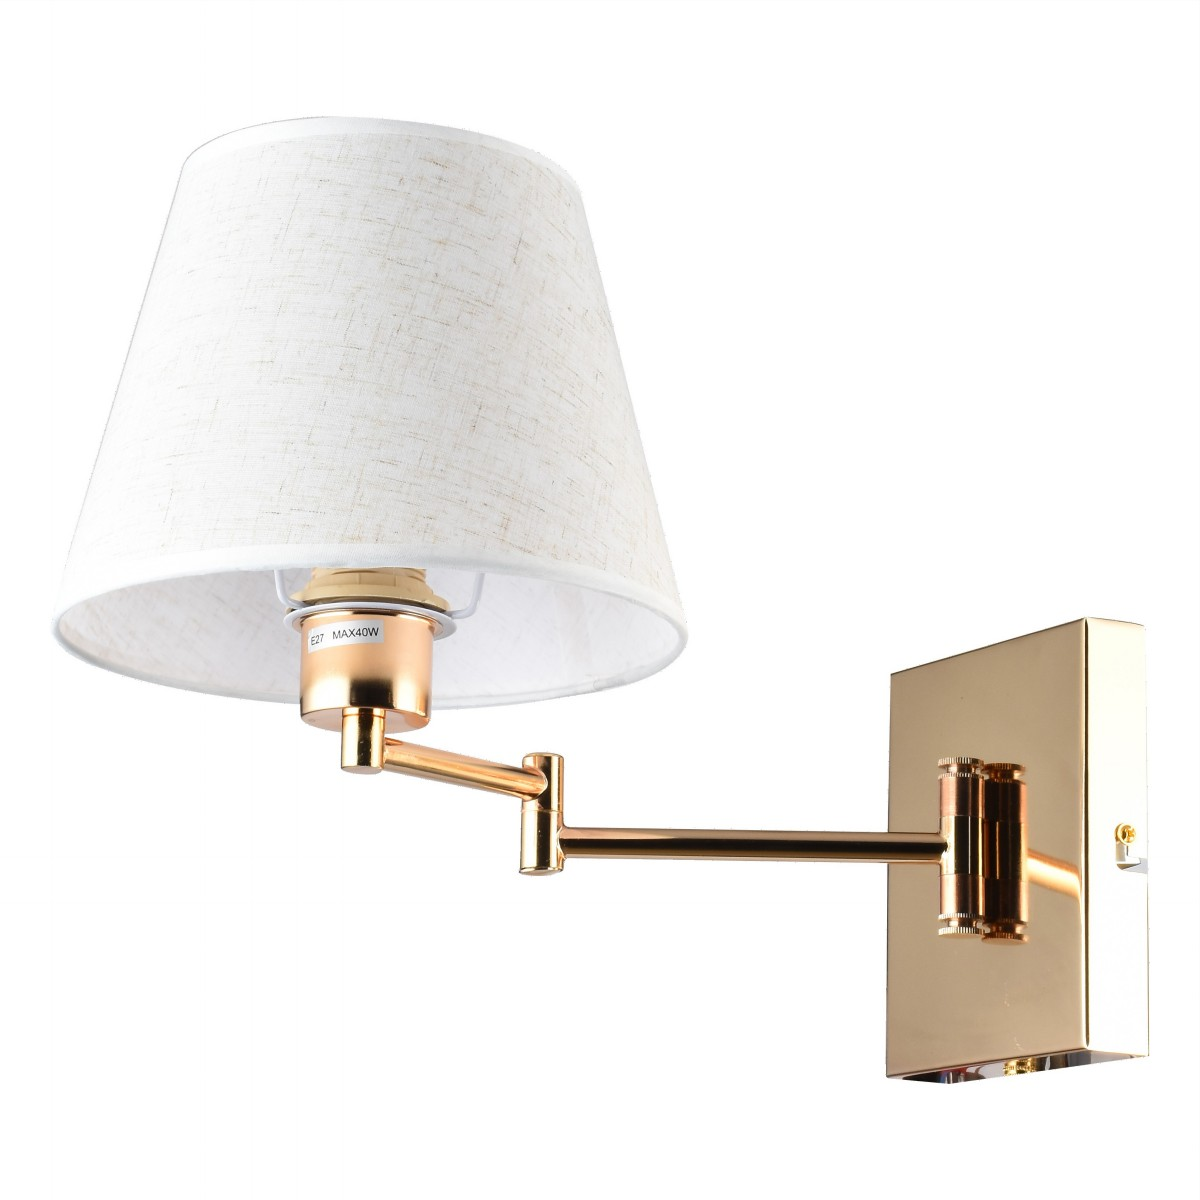 Sconce MB66746-1 E27 40W GOLD